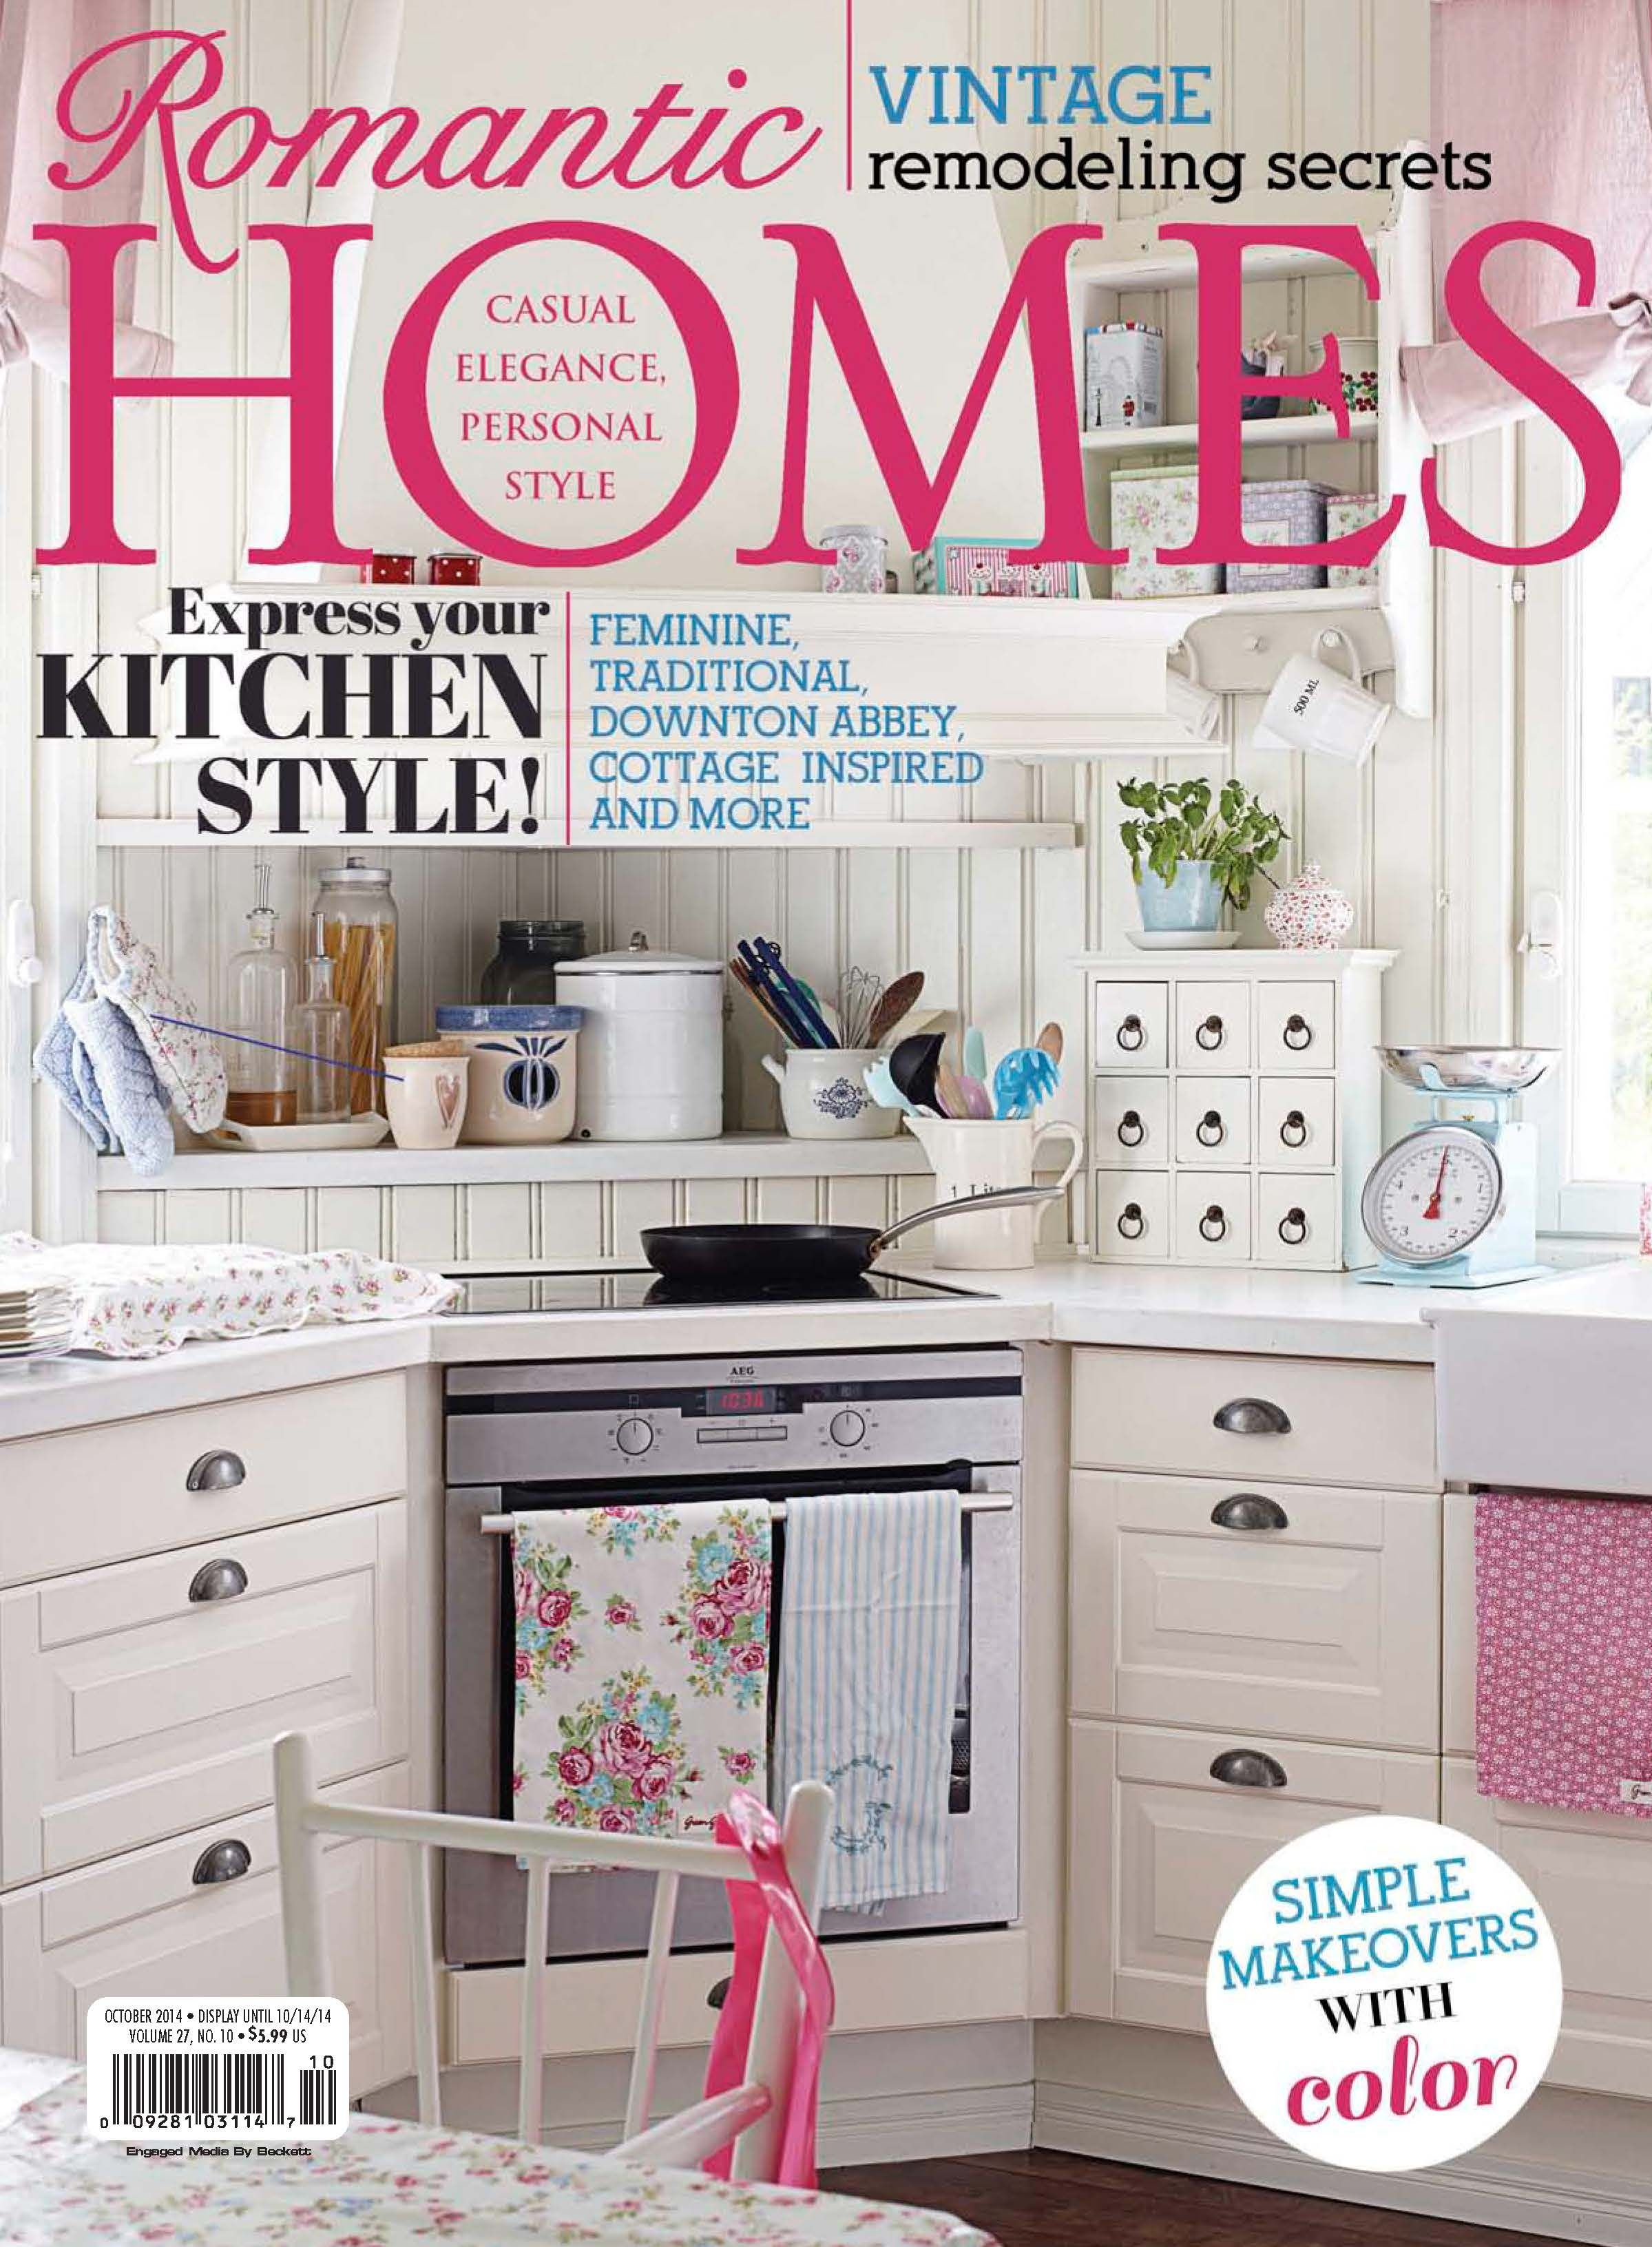 Romantic homes october edition read the digital edition by